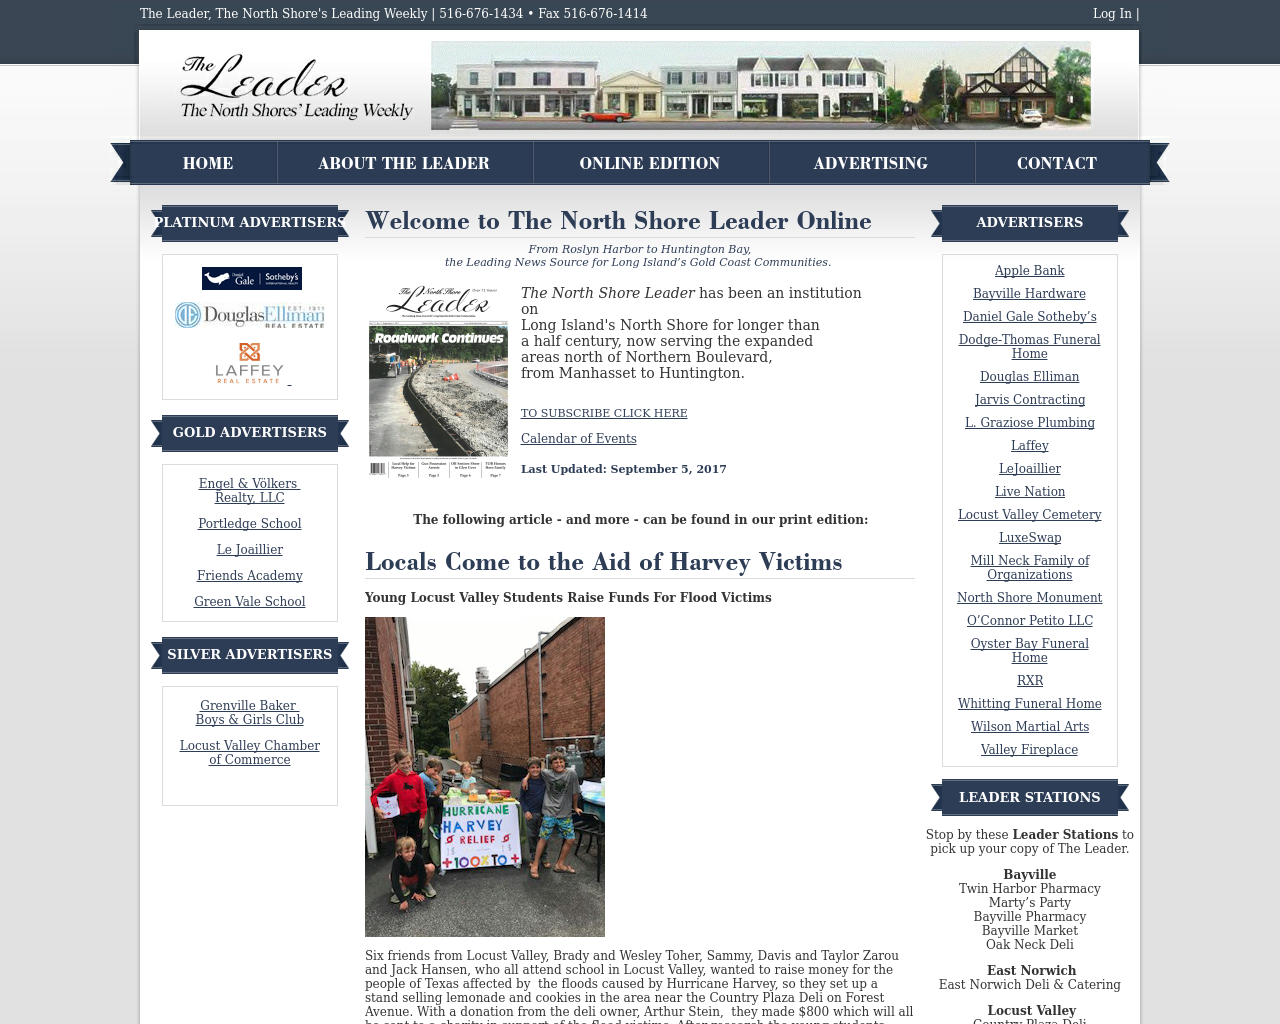 The-Leader-(The-North-Shores'-Leading-Weekly)-Advertising-Reviews-Pricing